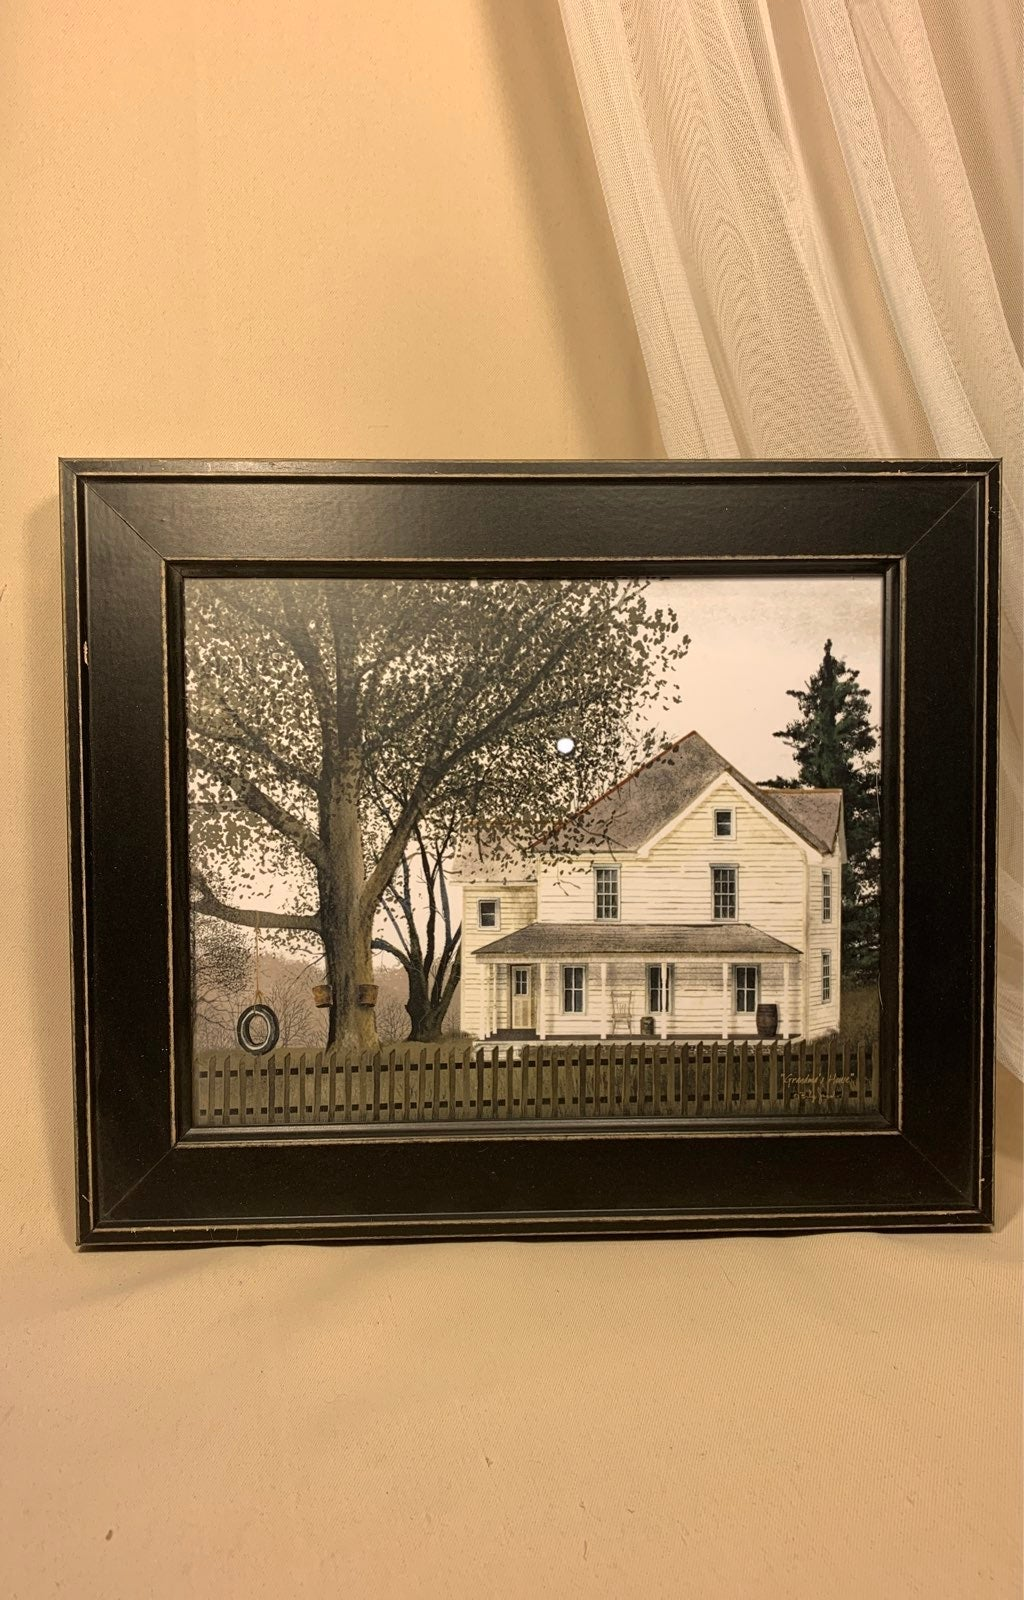 Framed art print  by Billy jacobs